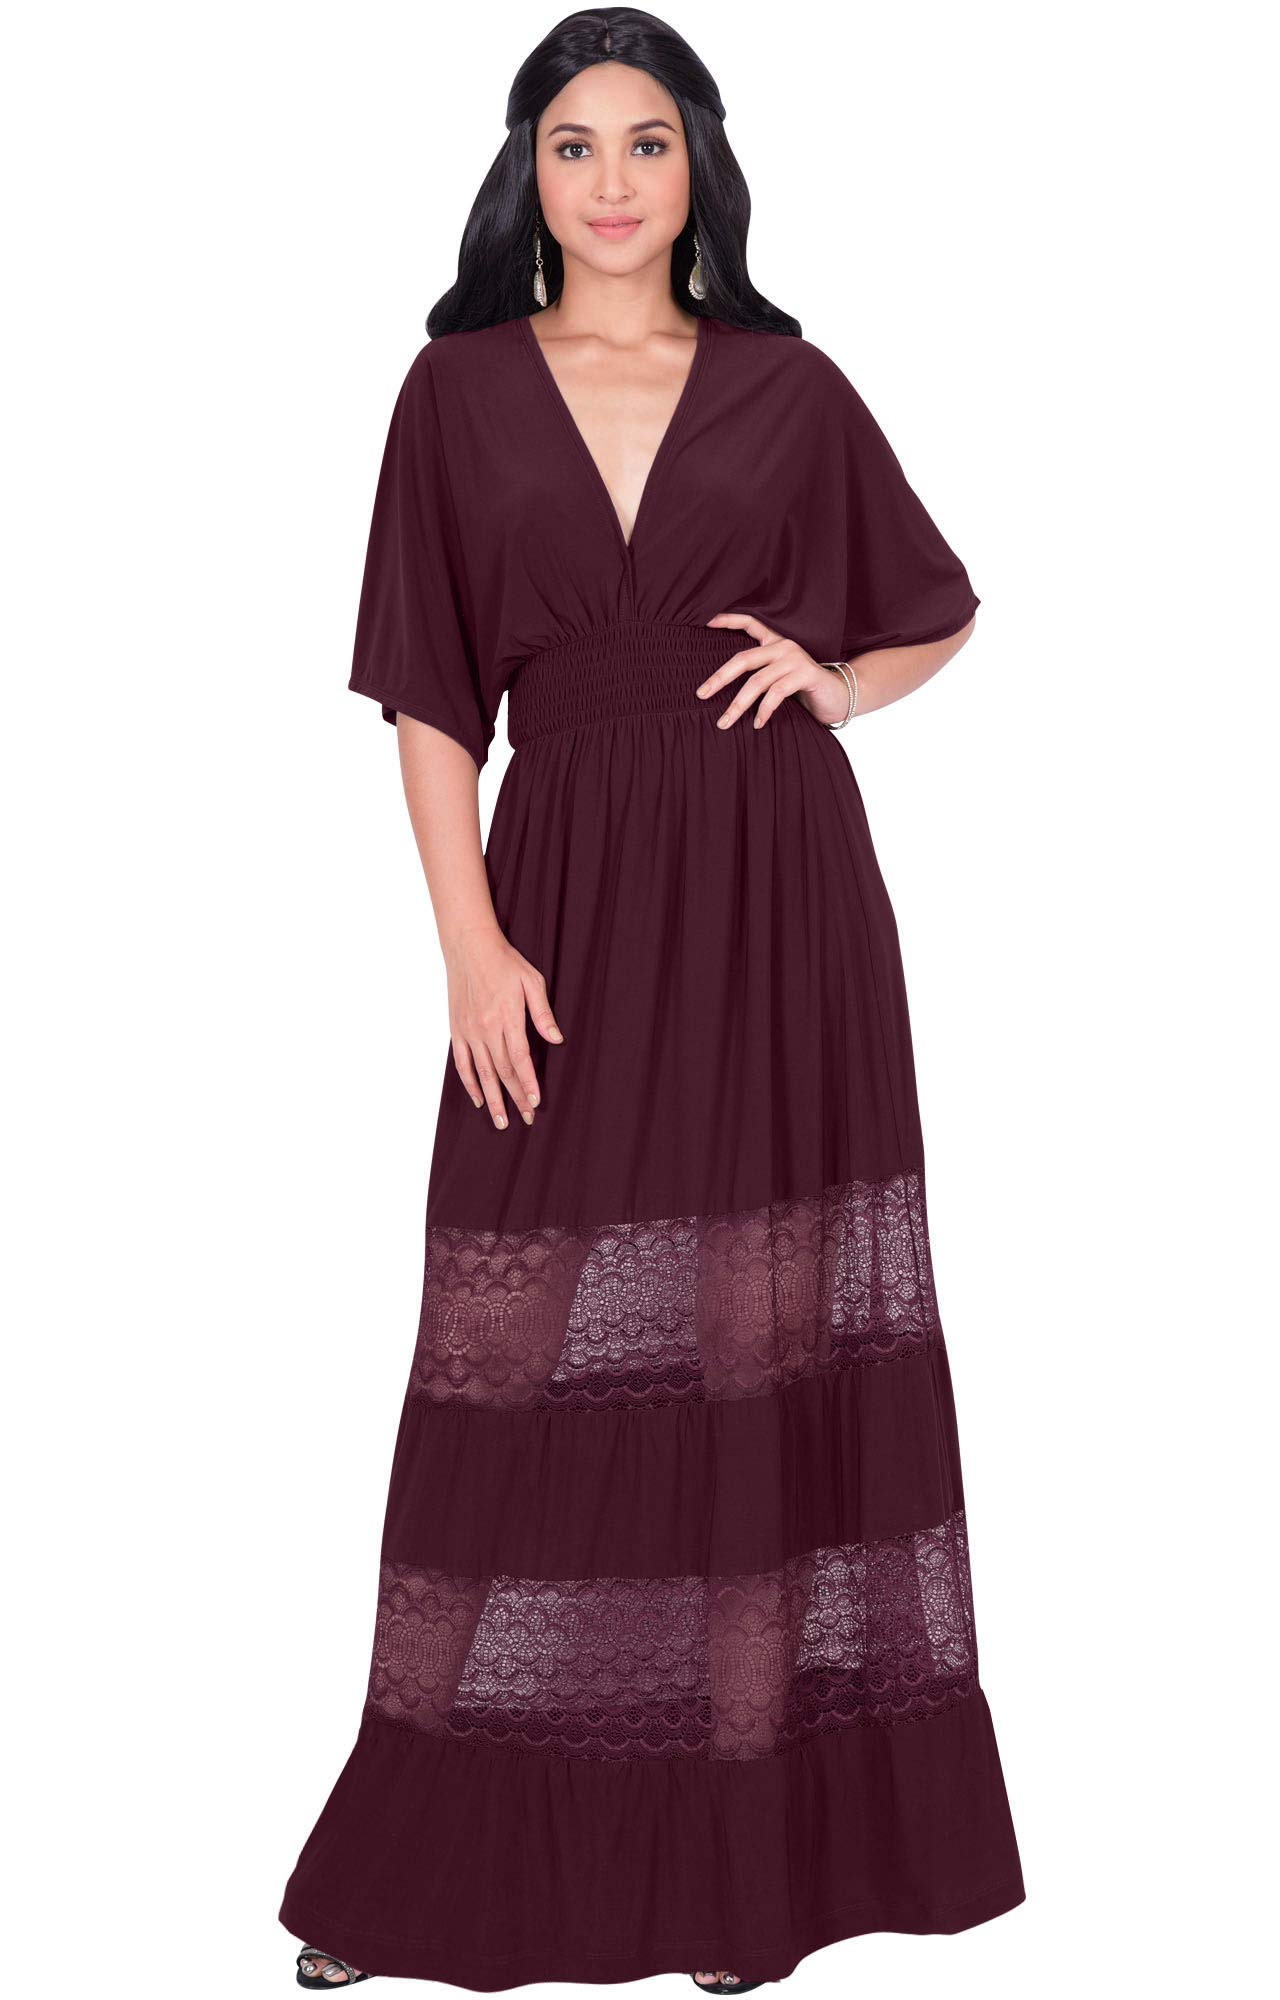 7cdf42046610 ... Sexy Summer Spring V-Neck Half Short Kimono Sleeve Sundress Lace Flowy  Casual Empire Waist Boho Bohemian Tall Beach Elegant Maxi Dress Gown, Maroon  Wine ...